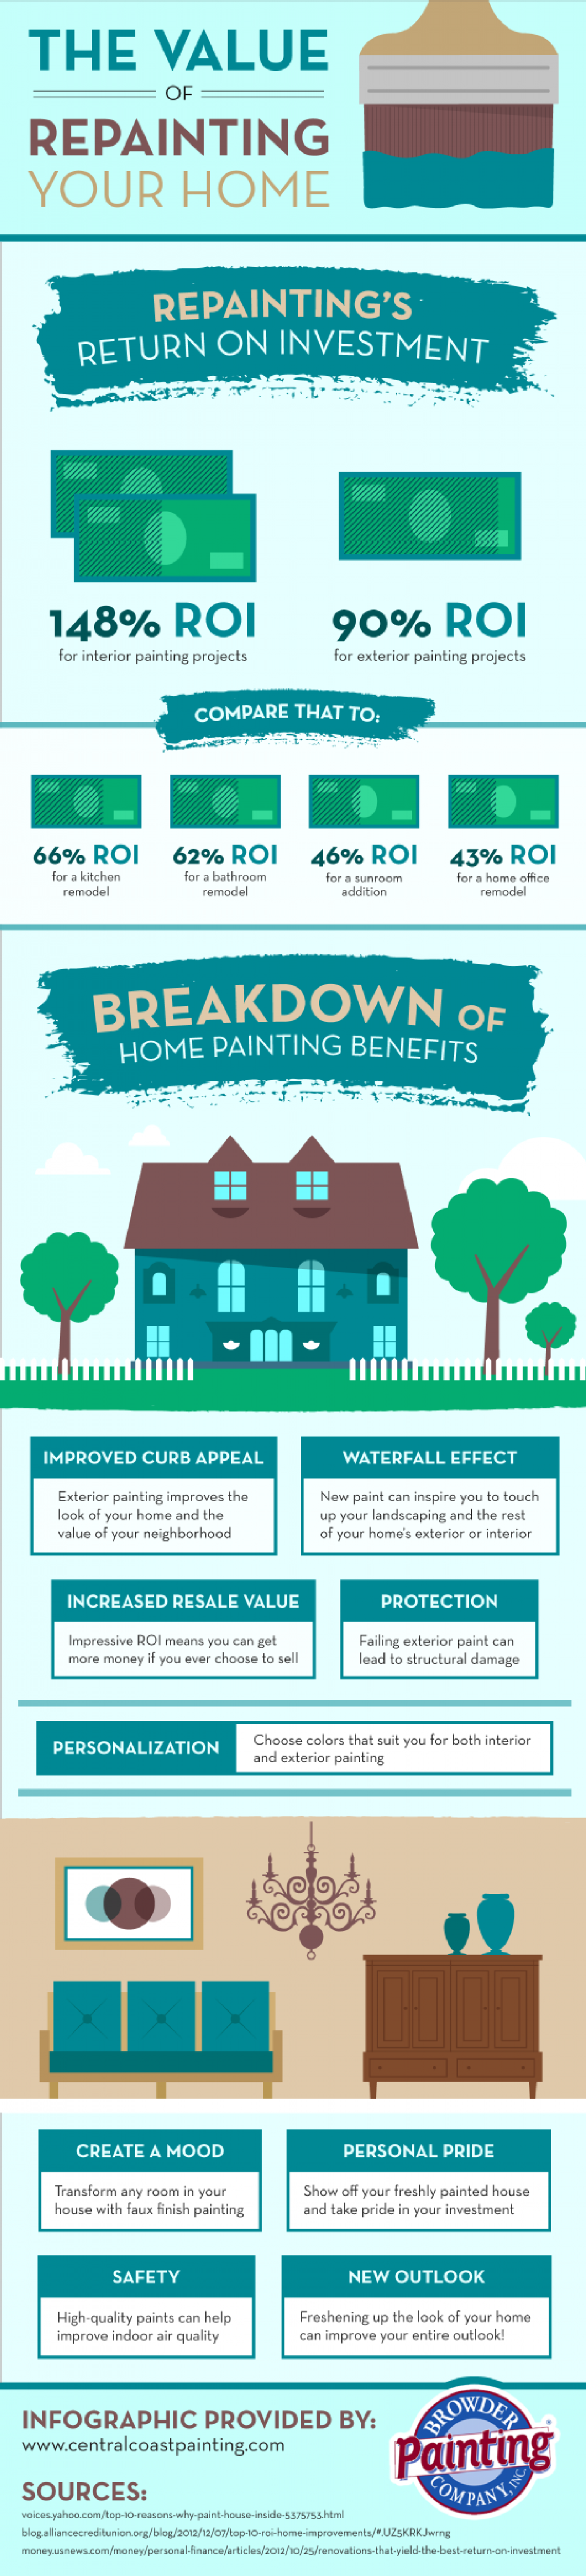 The Value of Repainting Your Home Infographic